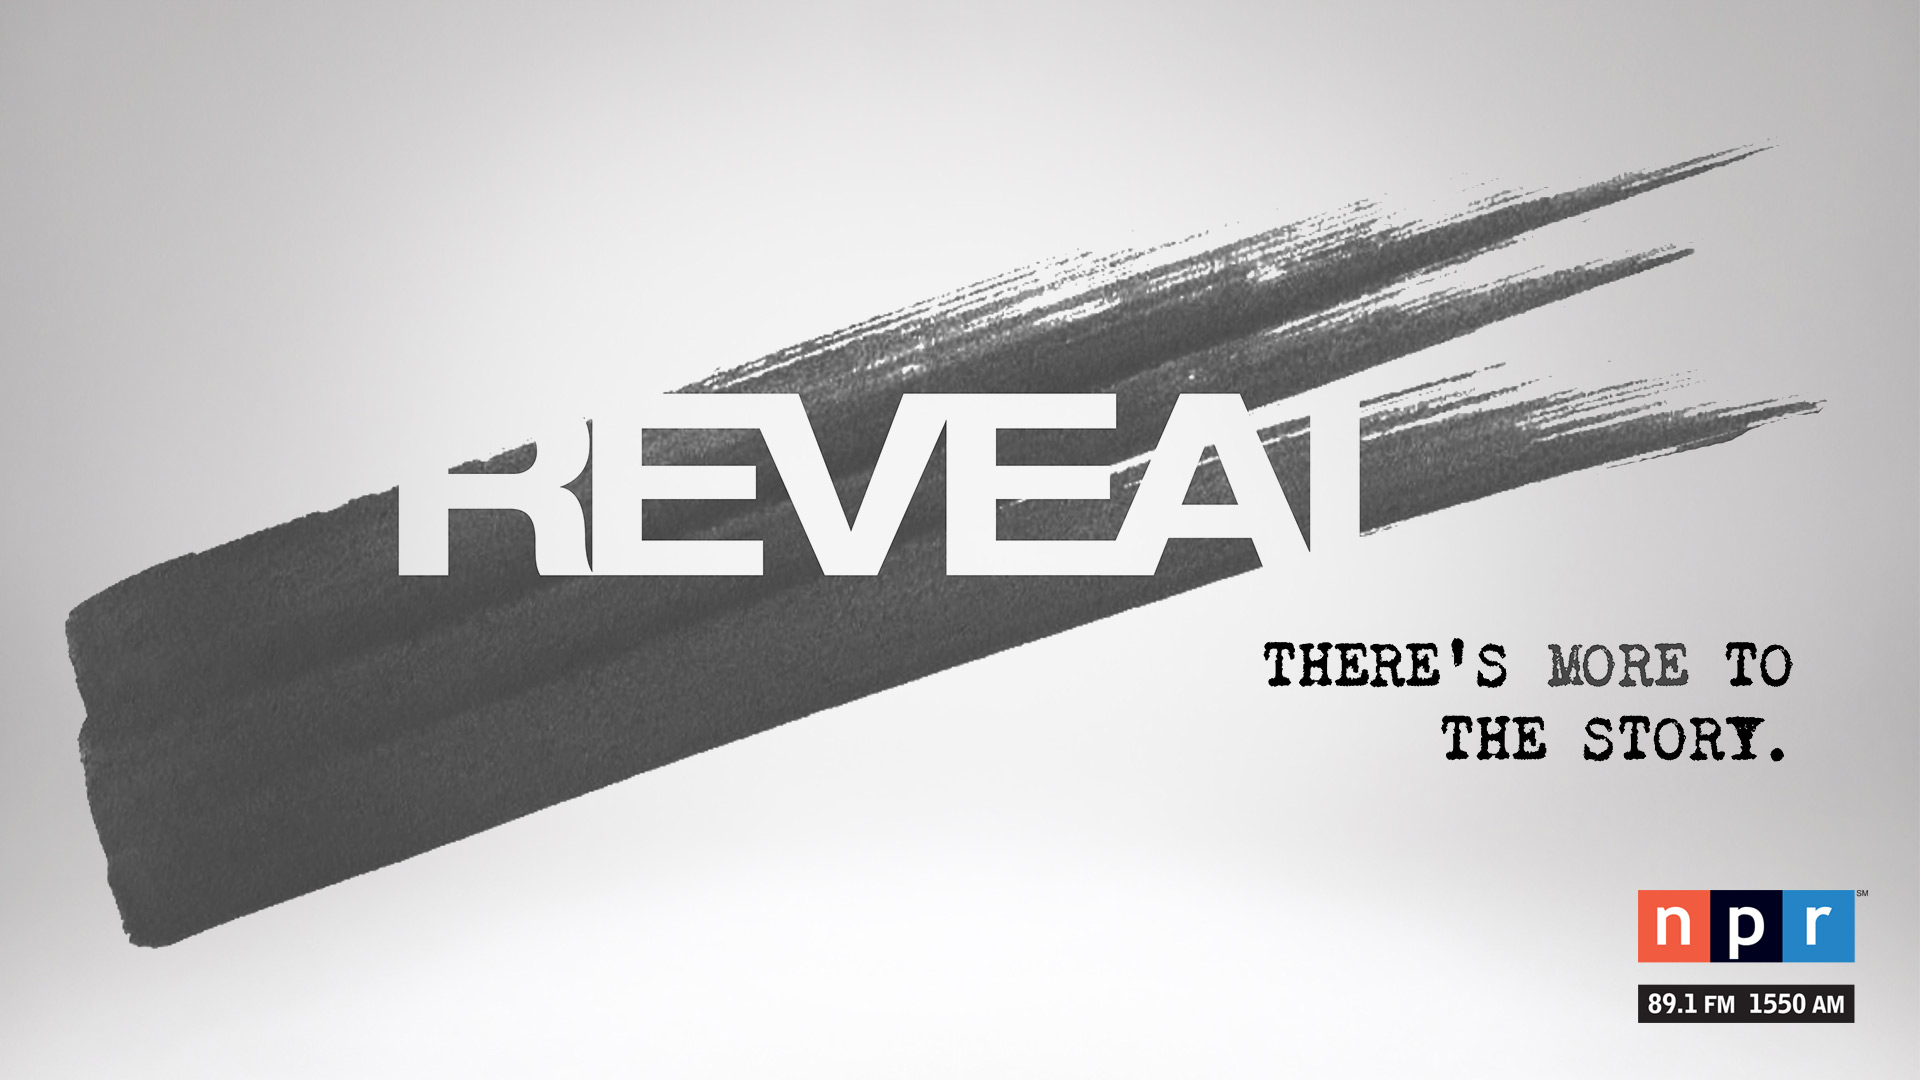 Reveal airs Sundays on NPR 89.1.